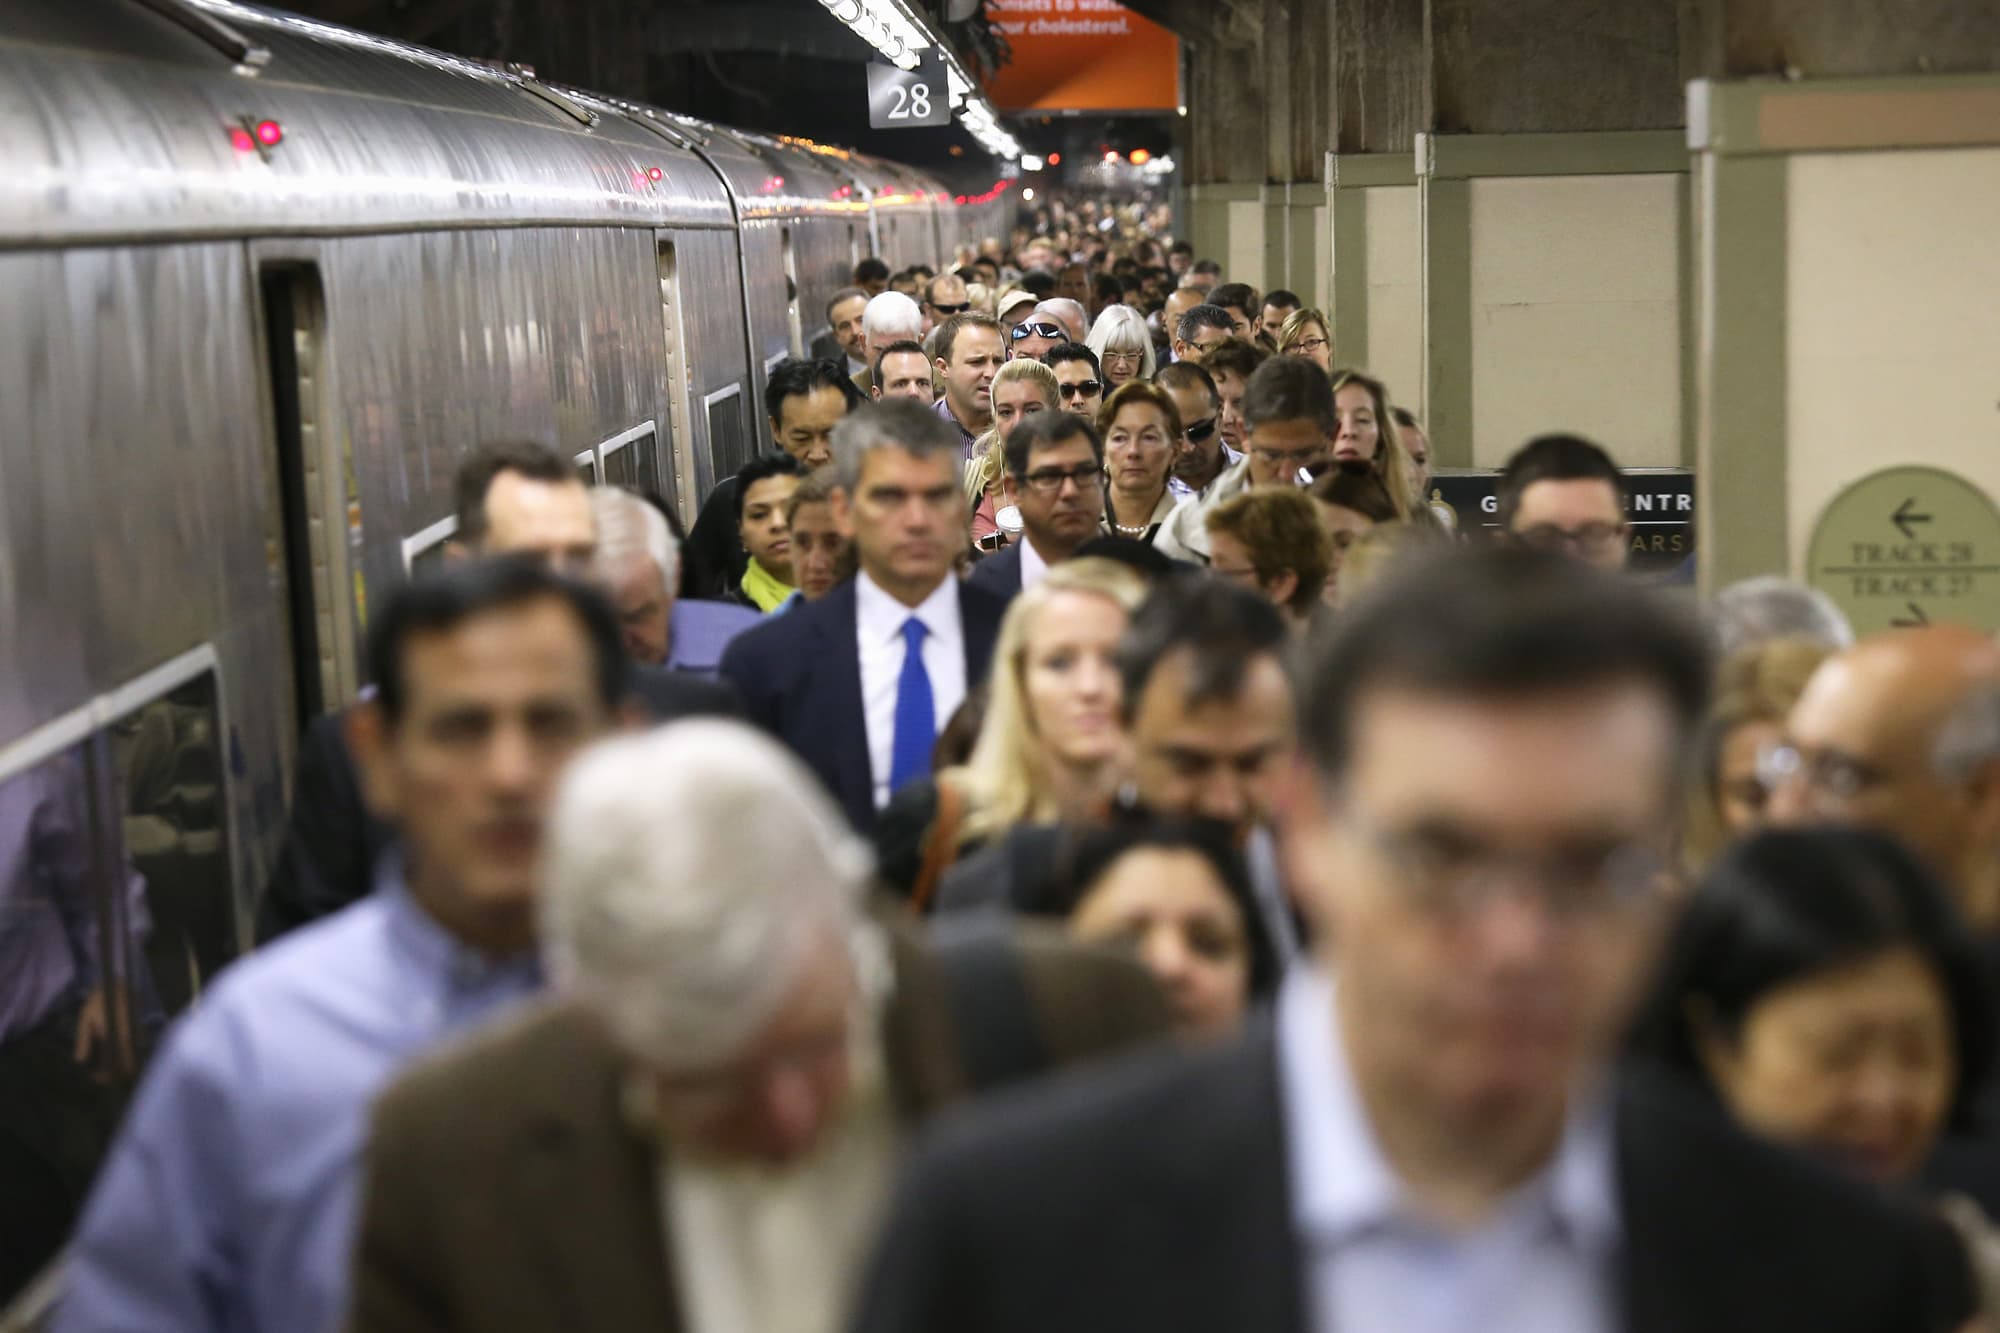 Commuters arriving at Grand Central Terminal